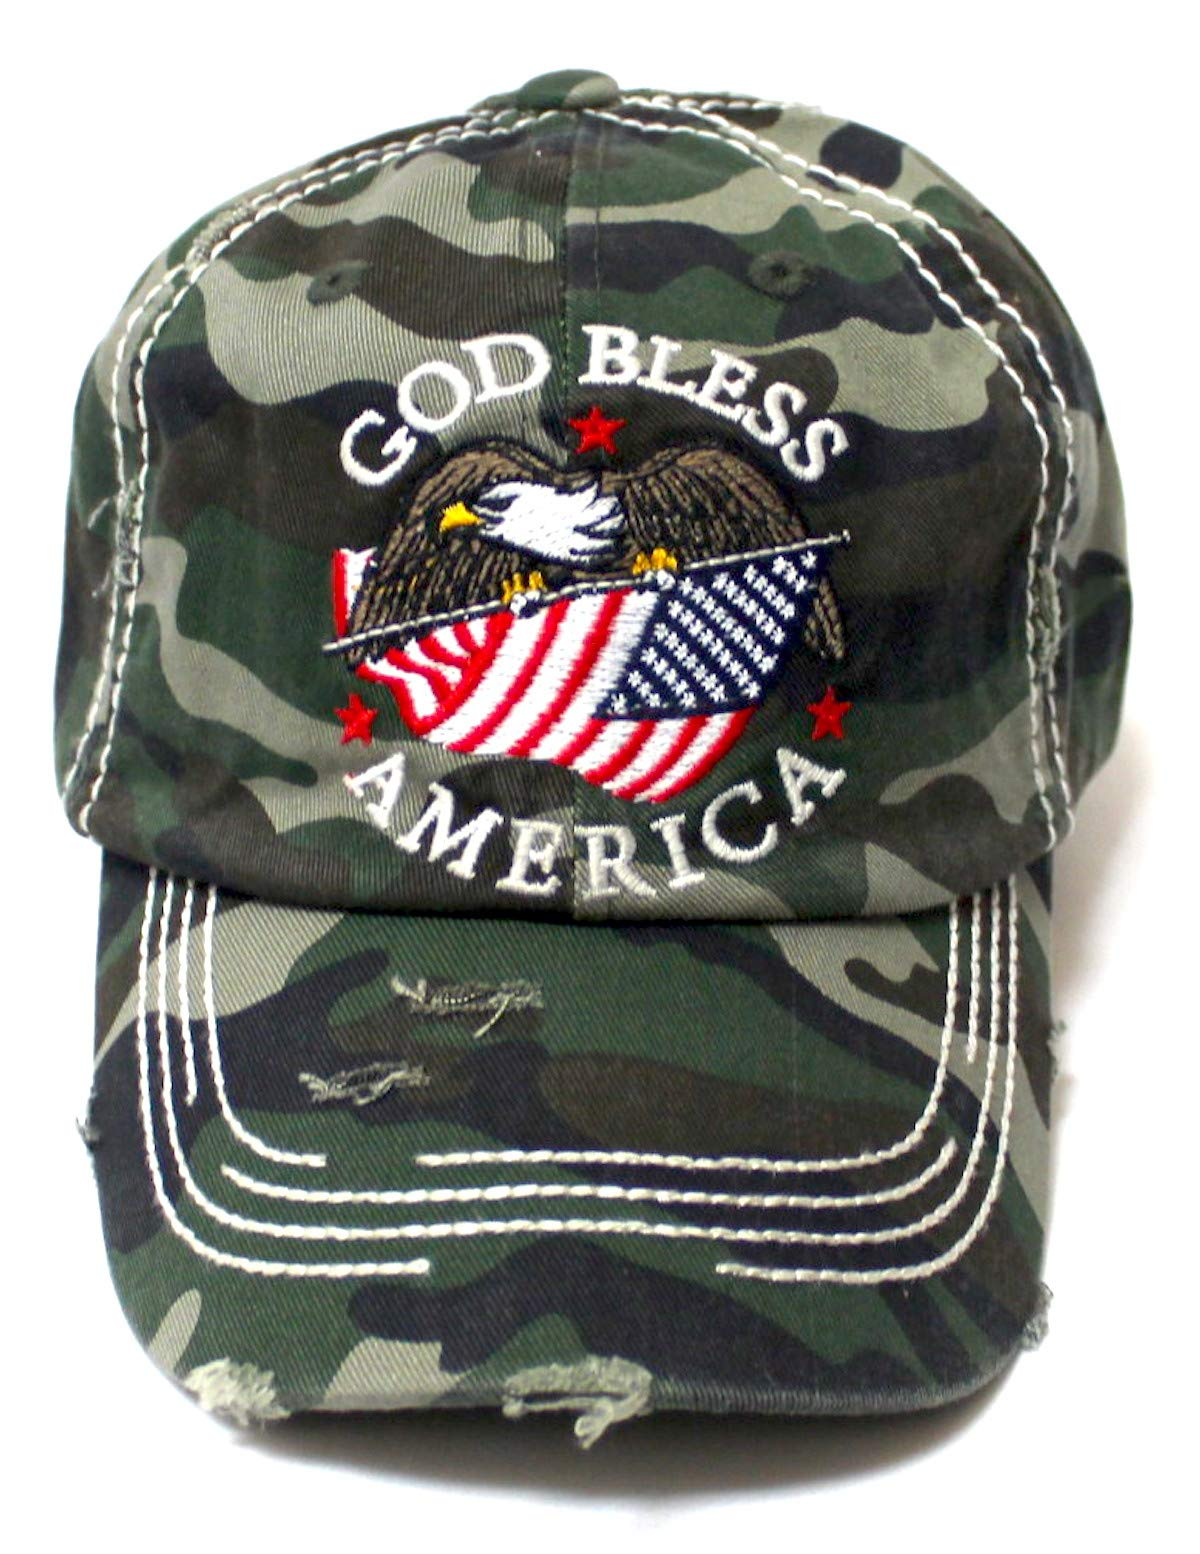 Distressed Adjustable Ballcap God Bless America Eagle USA Flag Monogram Embroidery Hat, Army Camoflauge - Caps 'N Vintage